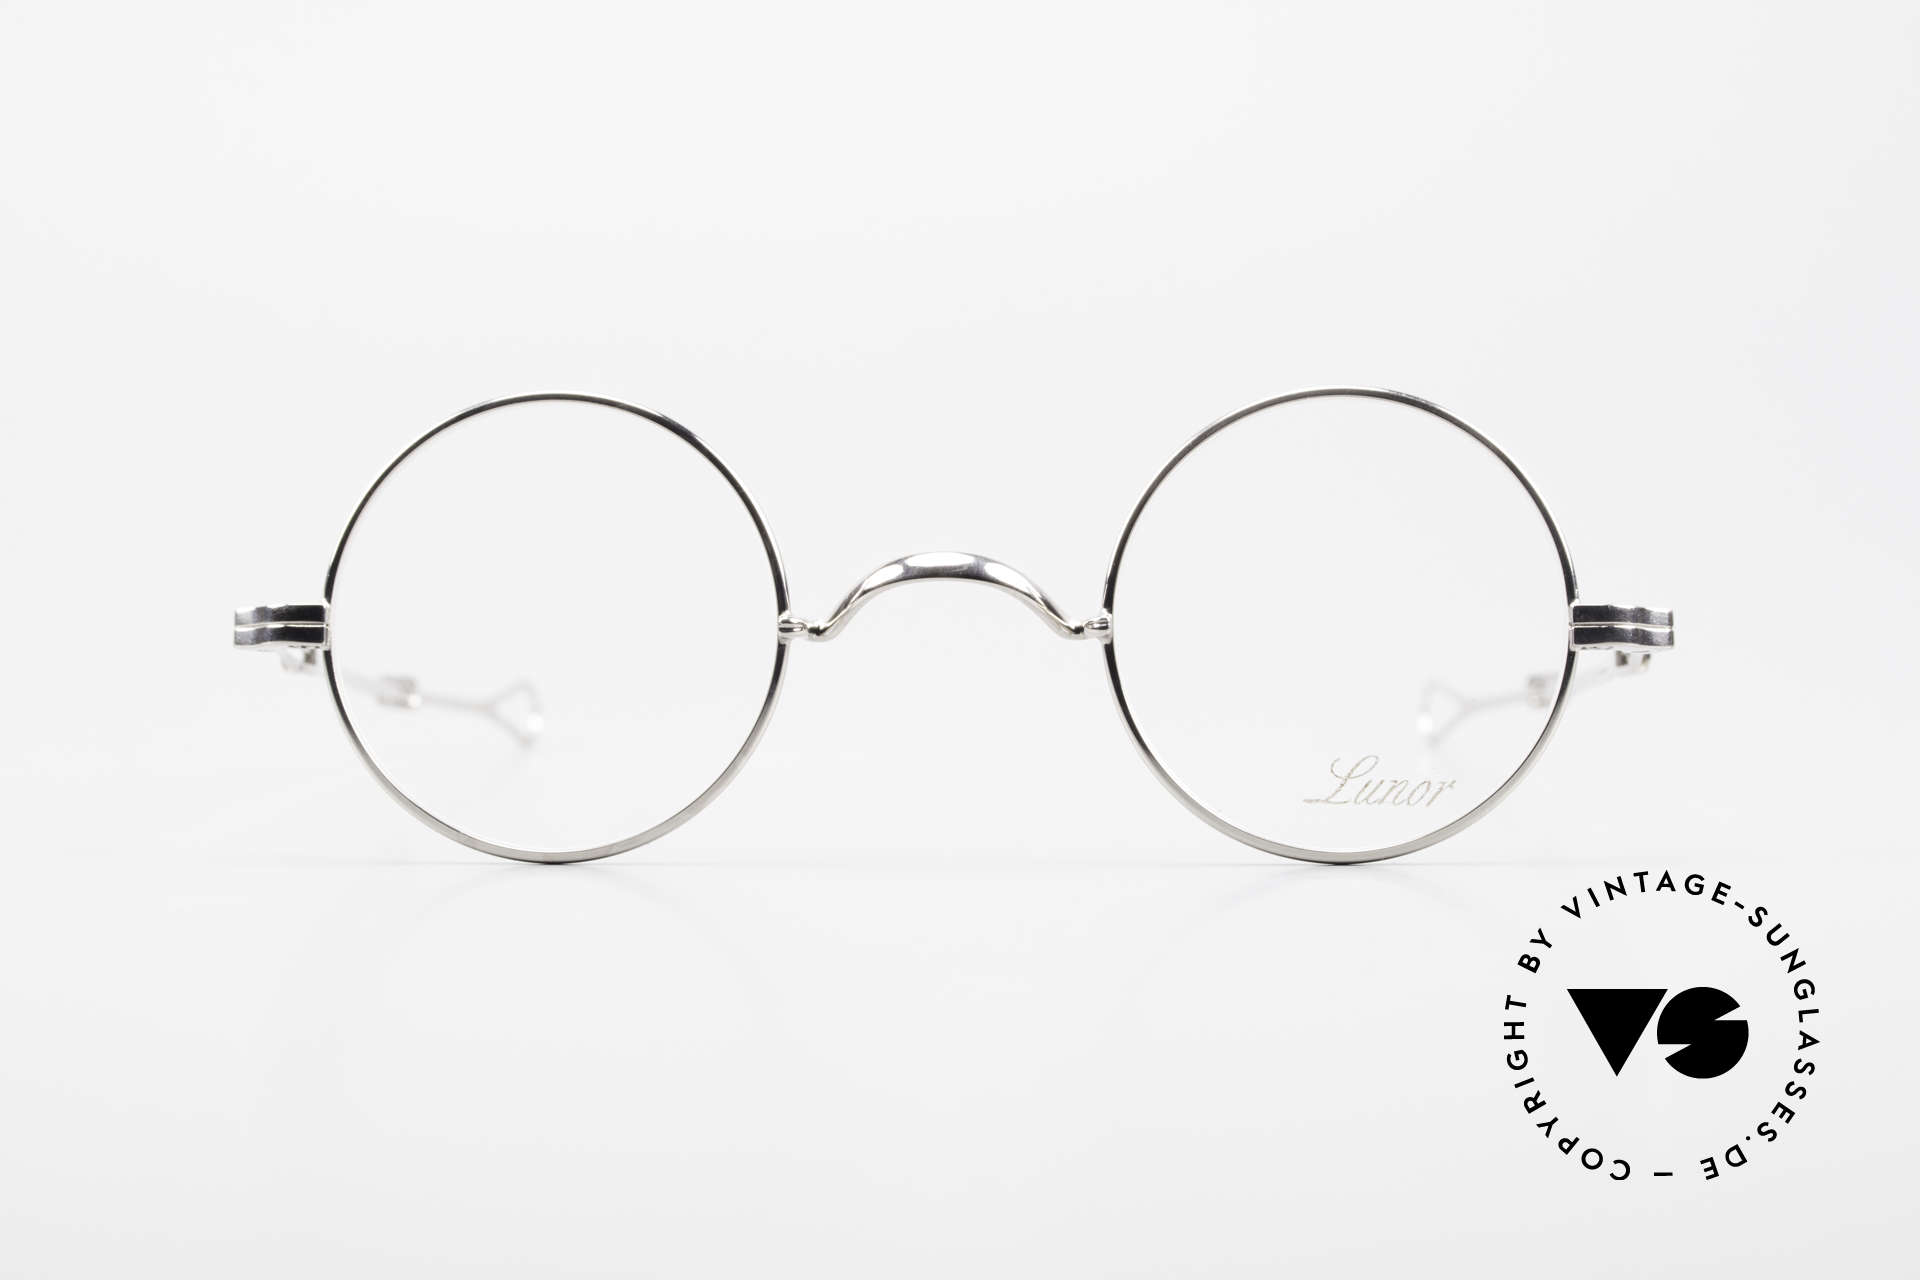 Lunor I 12 Telescopic Round Glasses Slide Temples, traditional German brand; quality handmade in Germany, Made for Men and Women